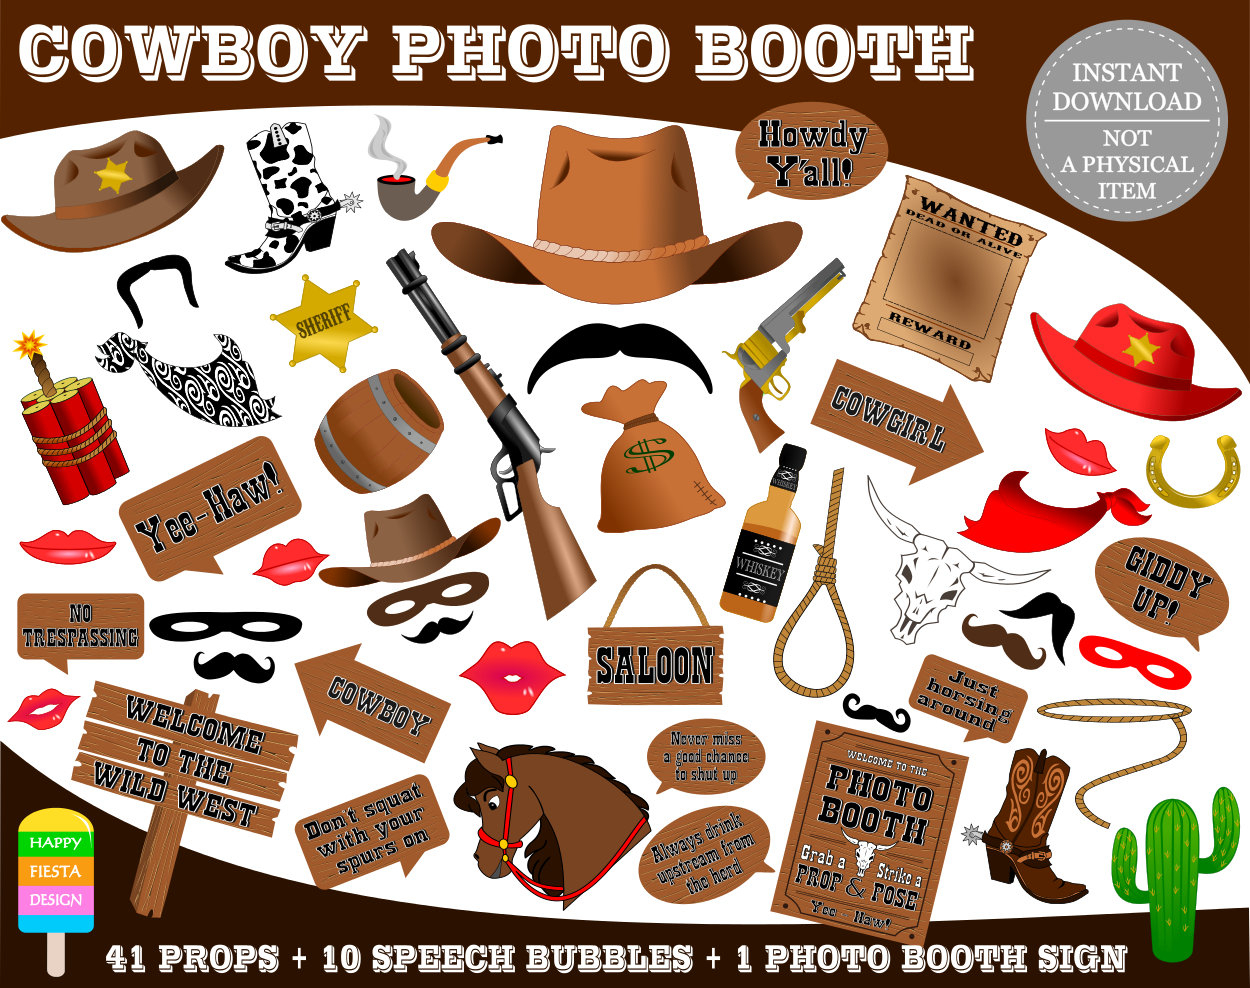 Printable Cowboy Photo Booth Propsphoto Booth Sign-Wild West | Etsy - Free Printable Western Photo Props